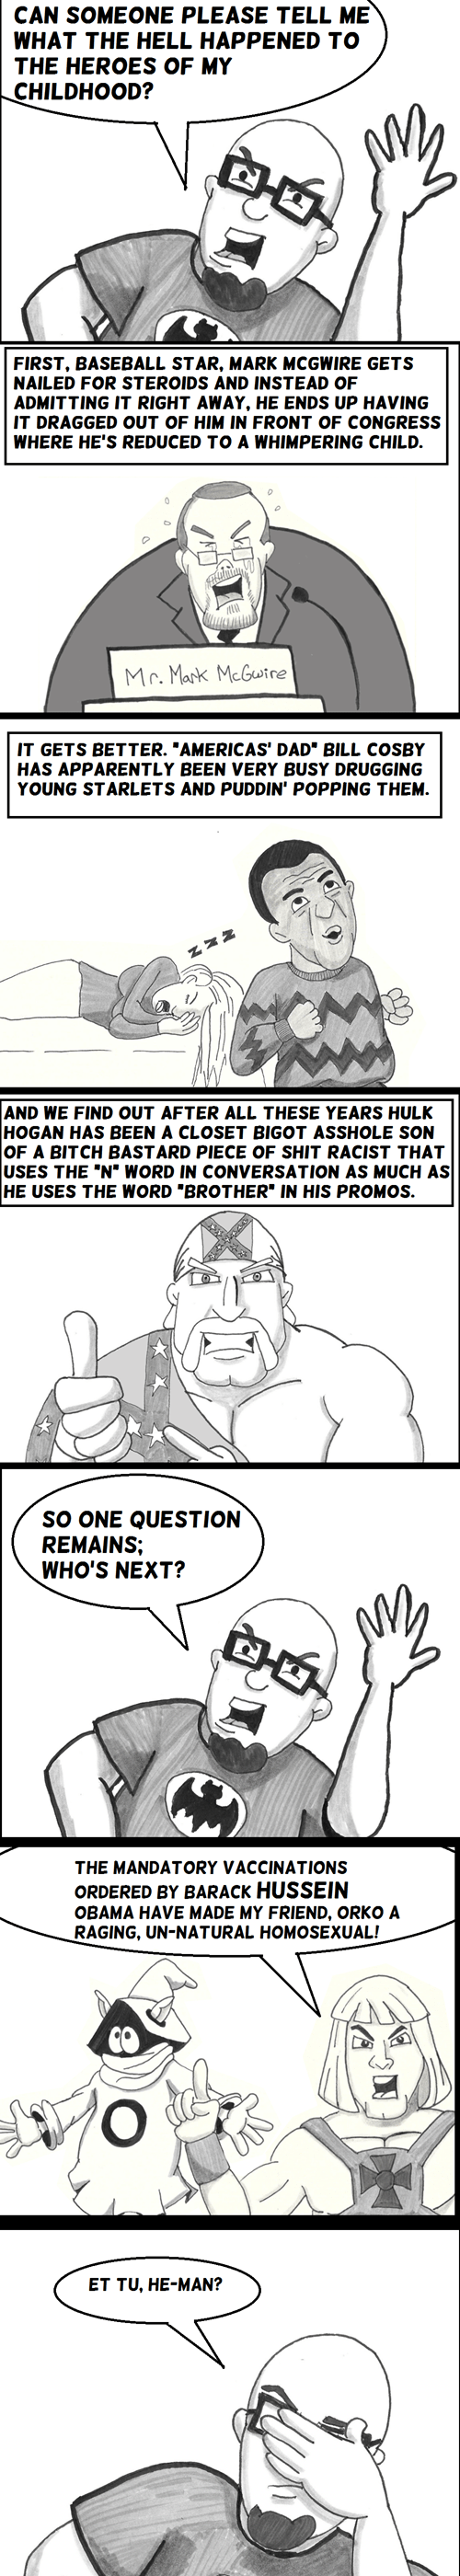 racism Hulk Hogan bill cosby sad but true he man orko web comics